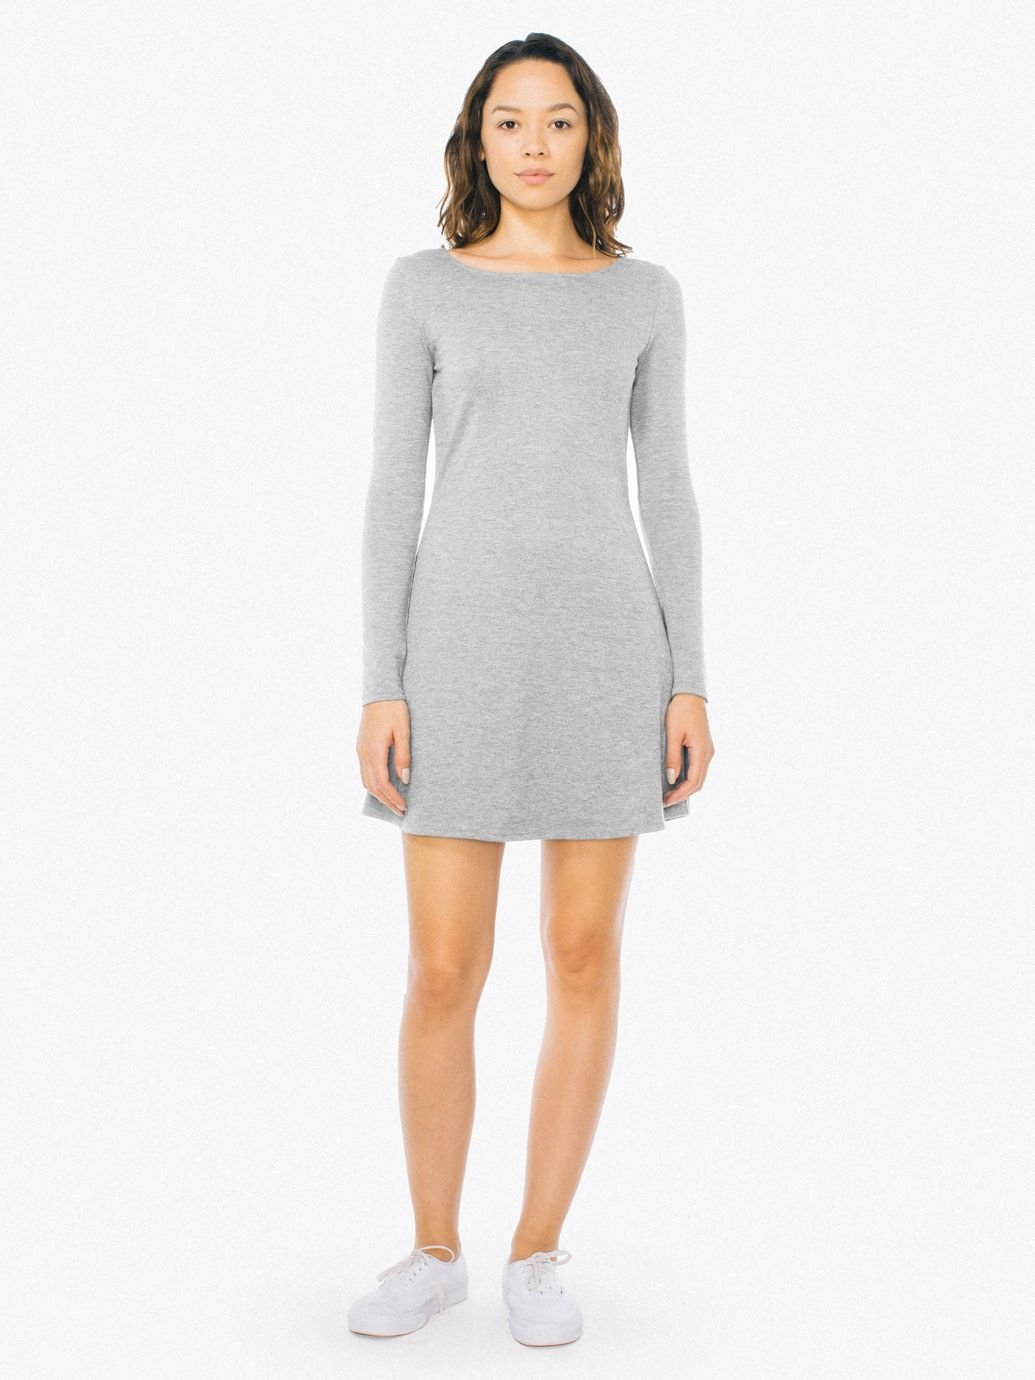 Women's Ponte Long Sleeve Mini Dress in Heather Grey Size Small, Nylon/Spandex by American Apparel